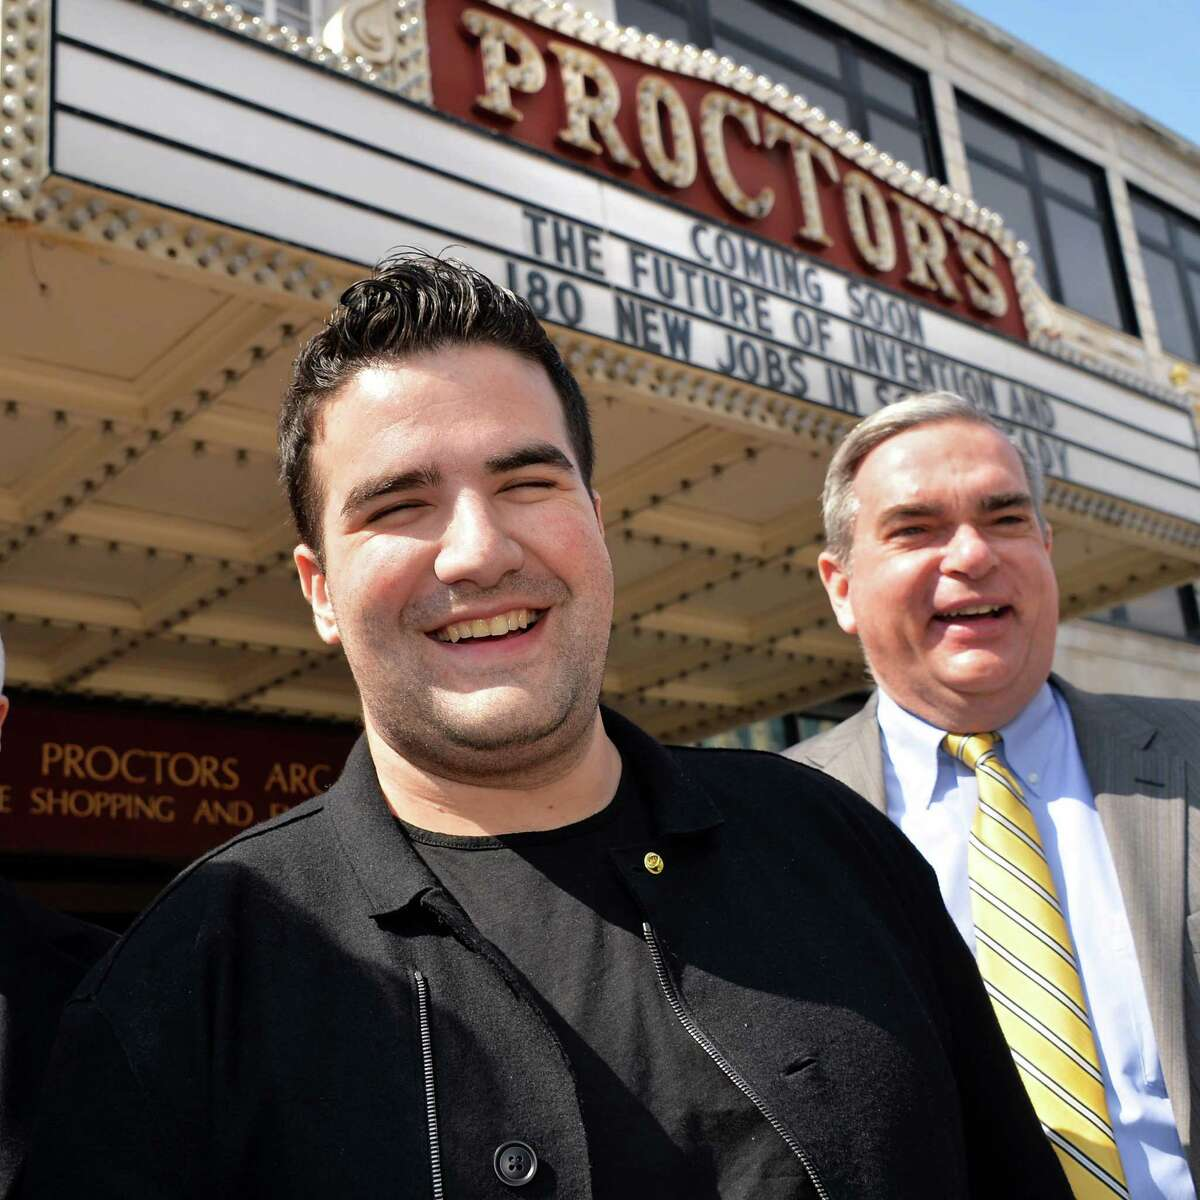 25-year-old entrepreneur Ben Kaufman, left, and Schenectady Mayor Gary McCarthy outside Proctor's Thursday March 27, 2014, in Schenectady, N.Y., following an announcement that Quirky is opening an office in Schenectady where they expect to hire 180 people. (John Carl D'Annibale / Times Union)